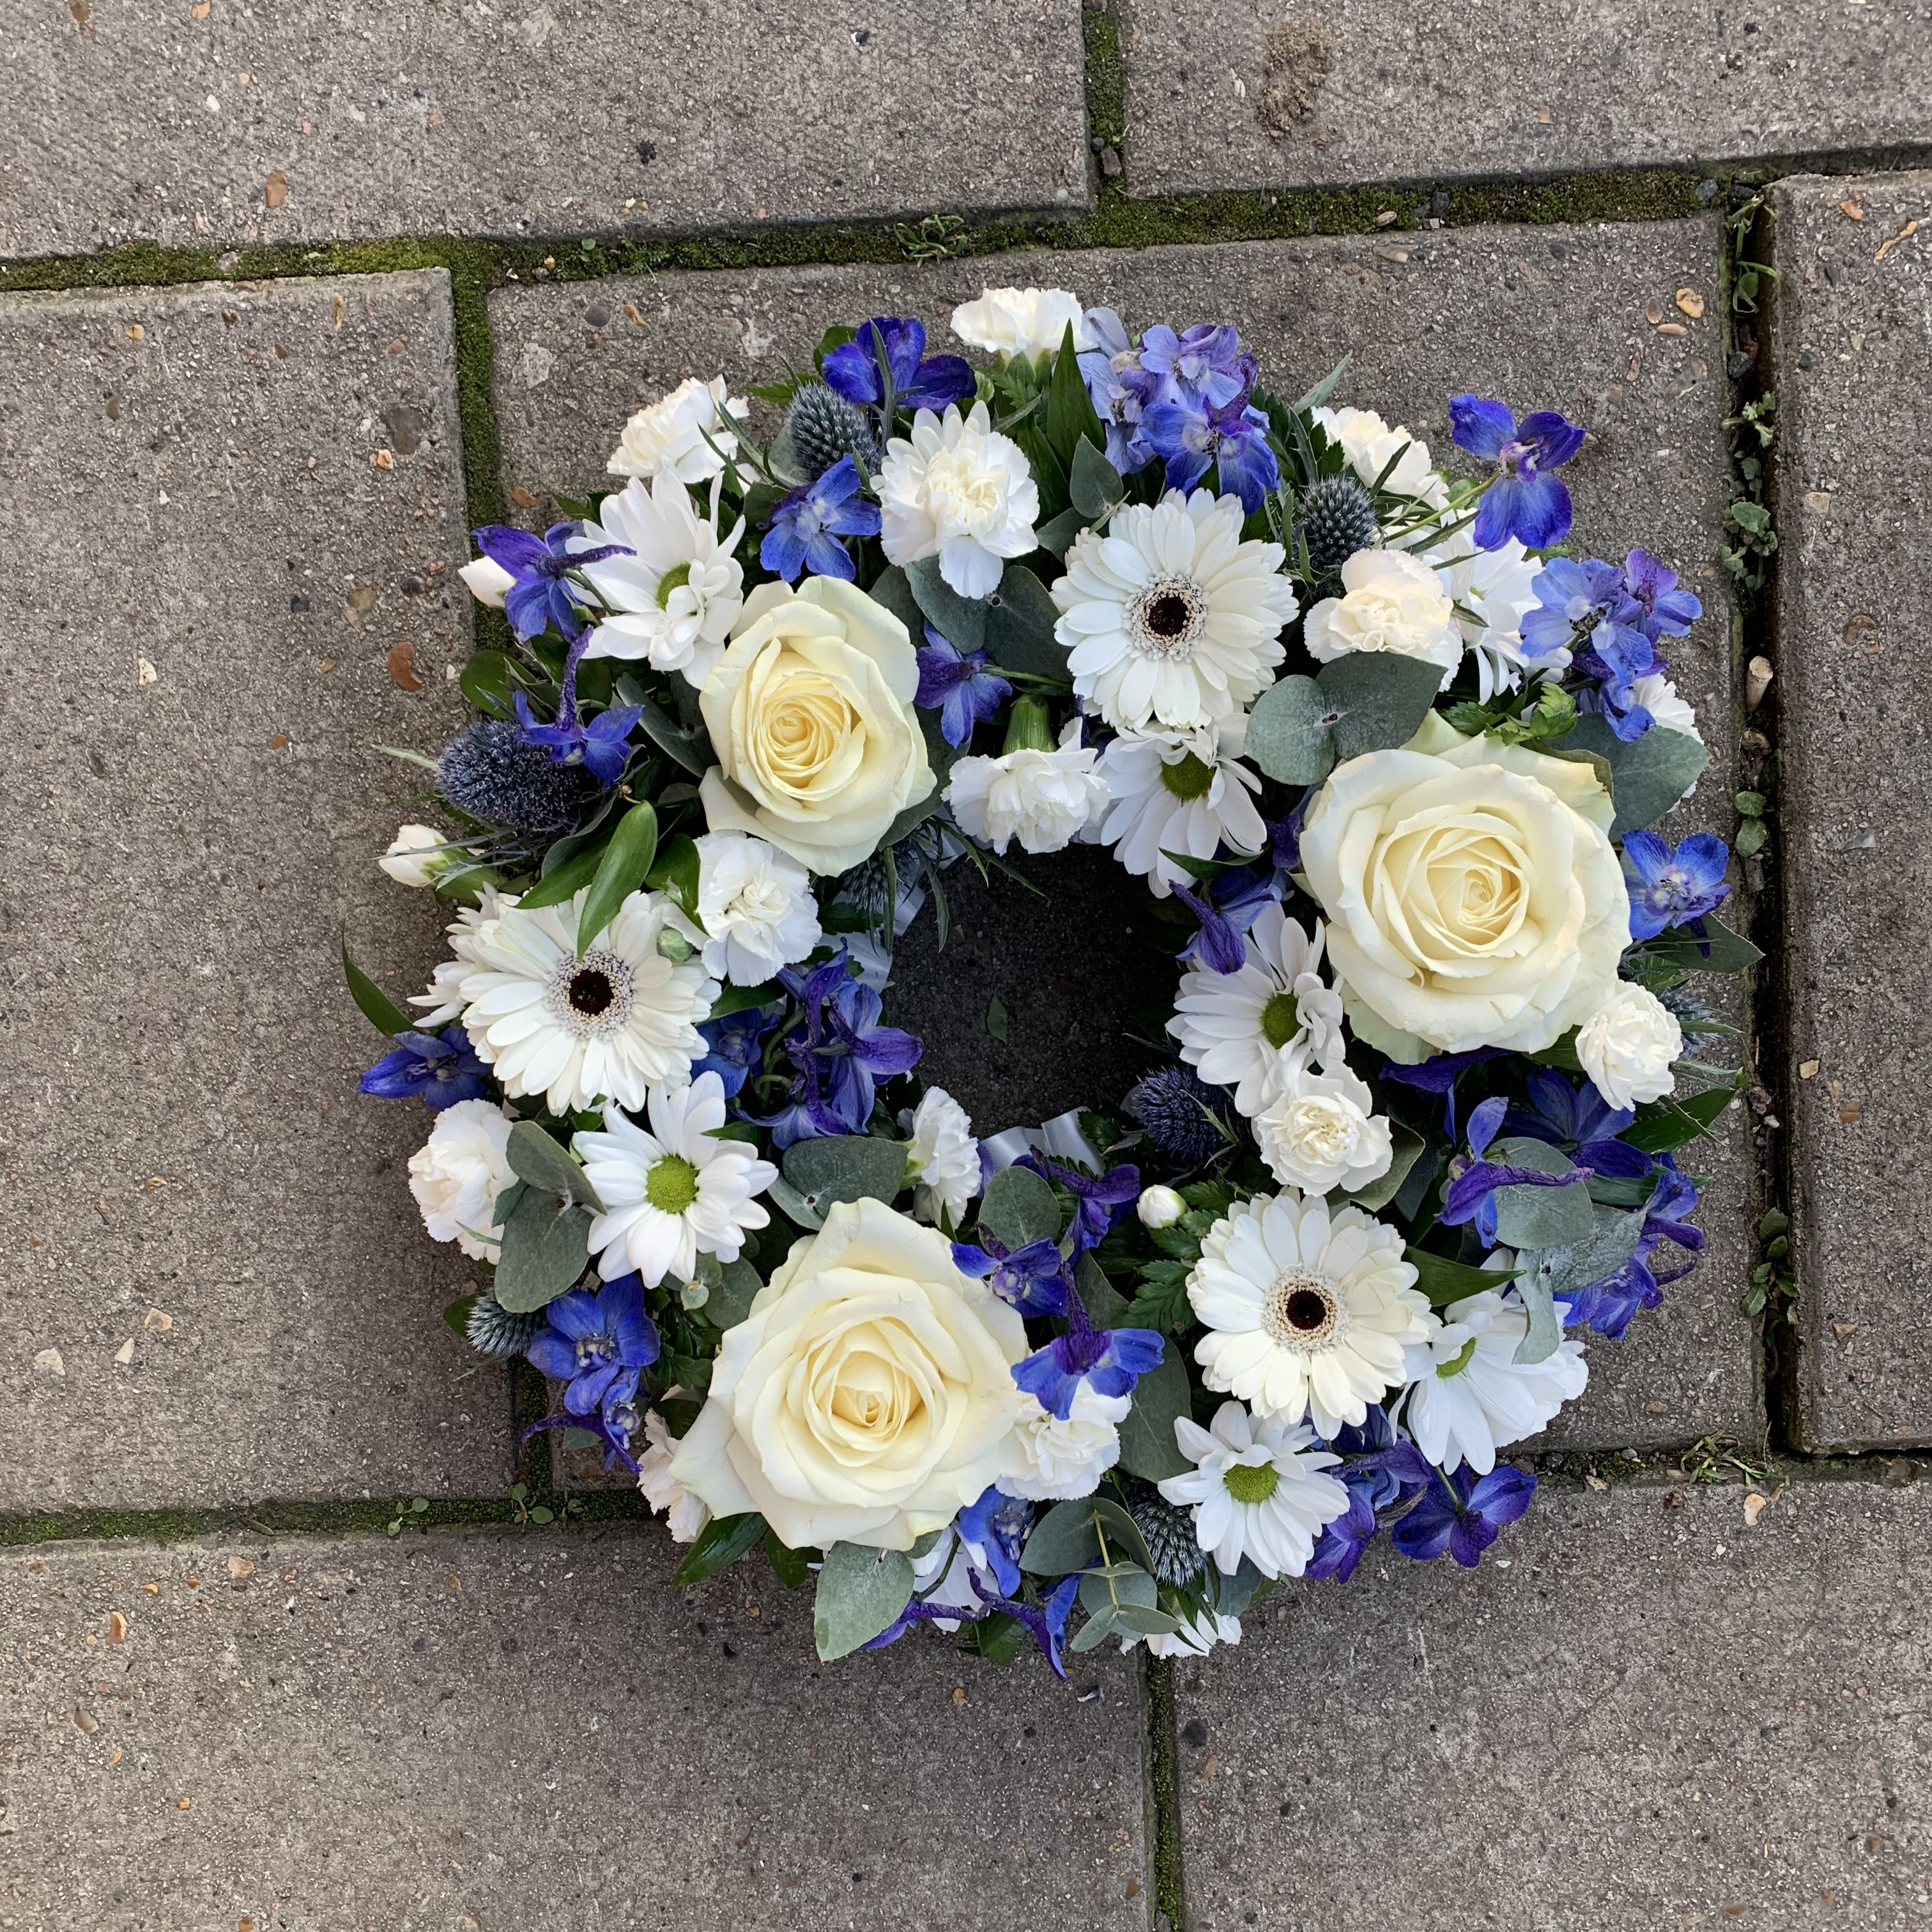 Blue and white wreath funeral flowers tribute in 2020